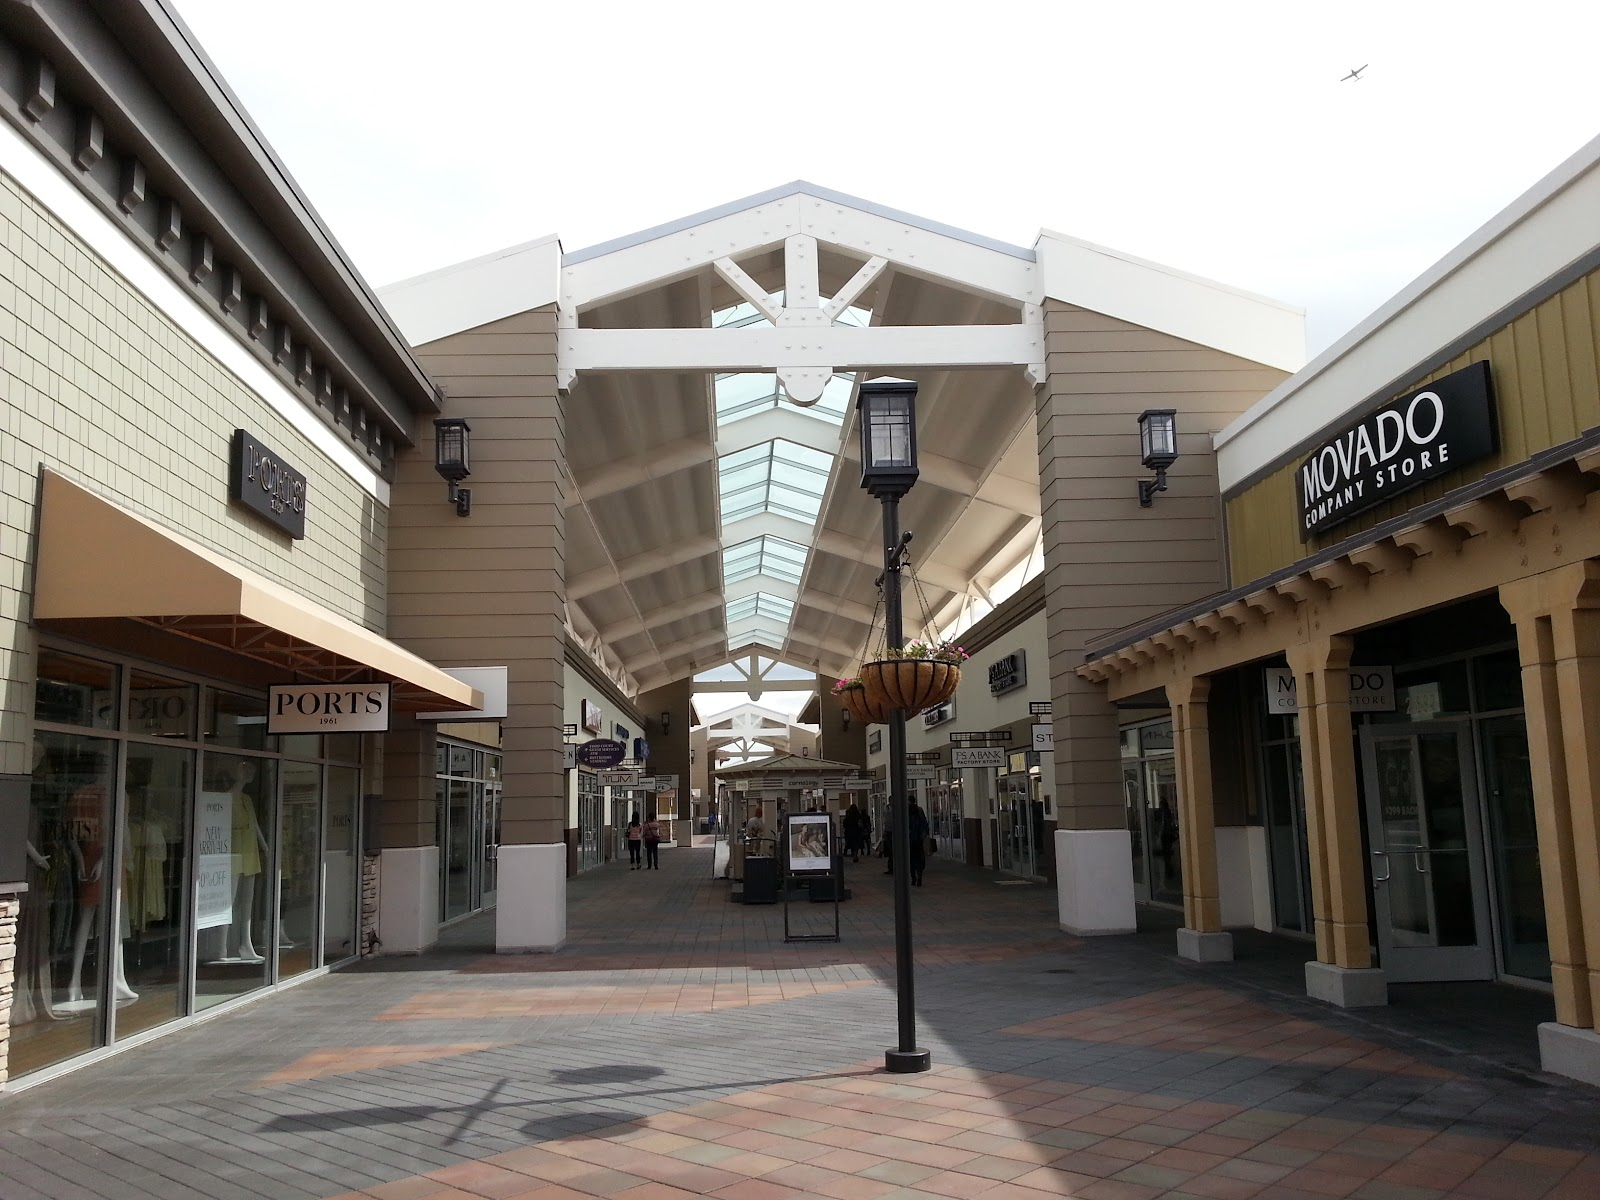 Search all Livermore outlet malls to get shopping today. Find out all outlet mall information including mall hours, contact information, information on stores, and the best restaurants to eat at. Search the closest factory outlet malls in your area.